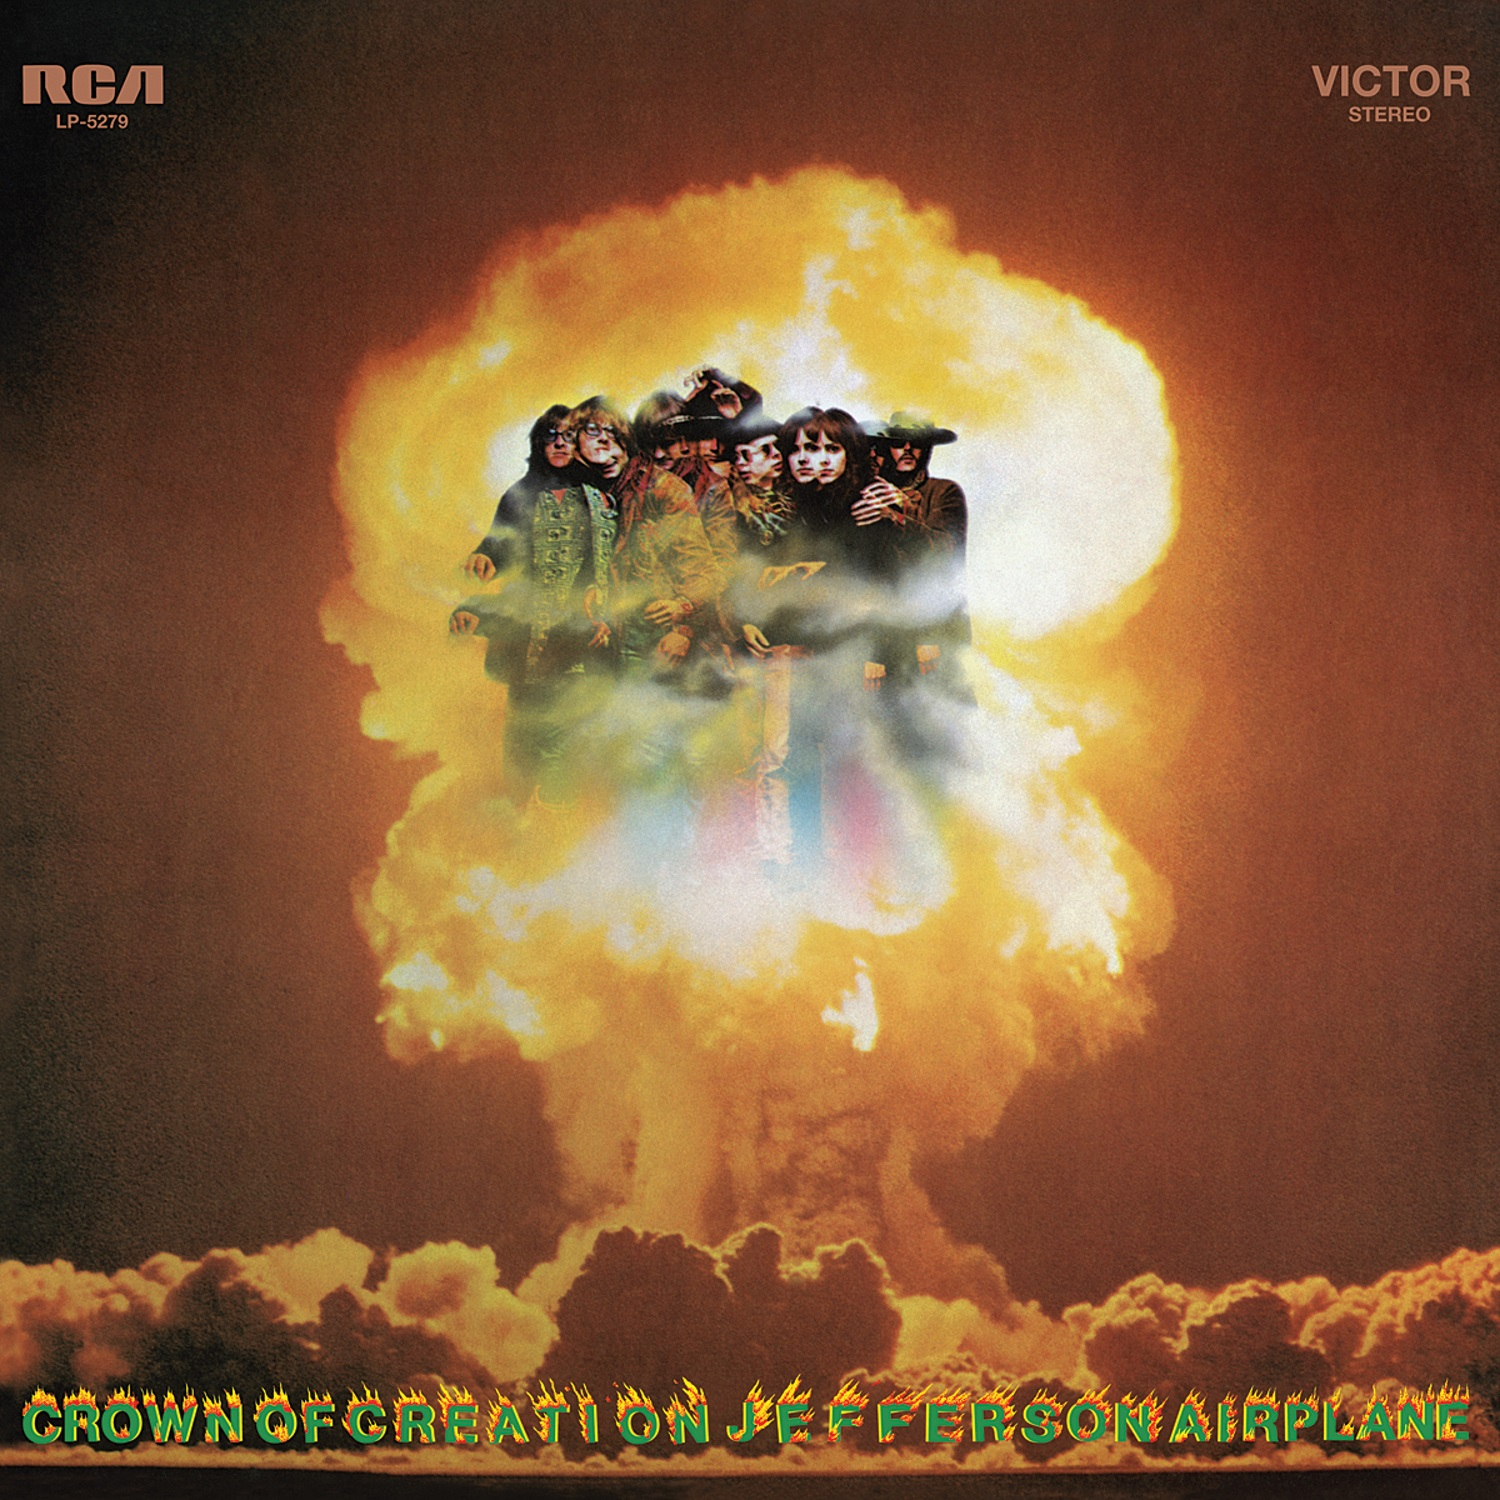 Jefferson Airplane - Crown of Creation LP